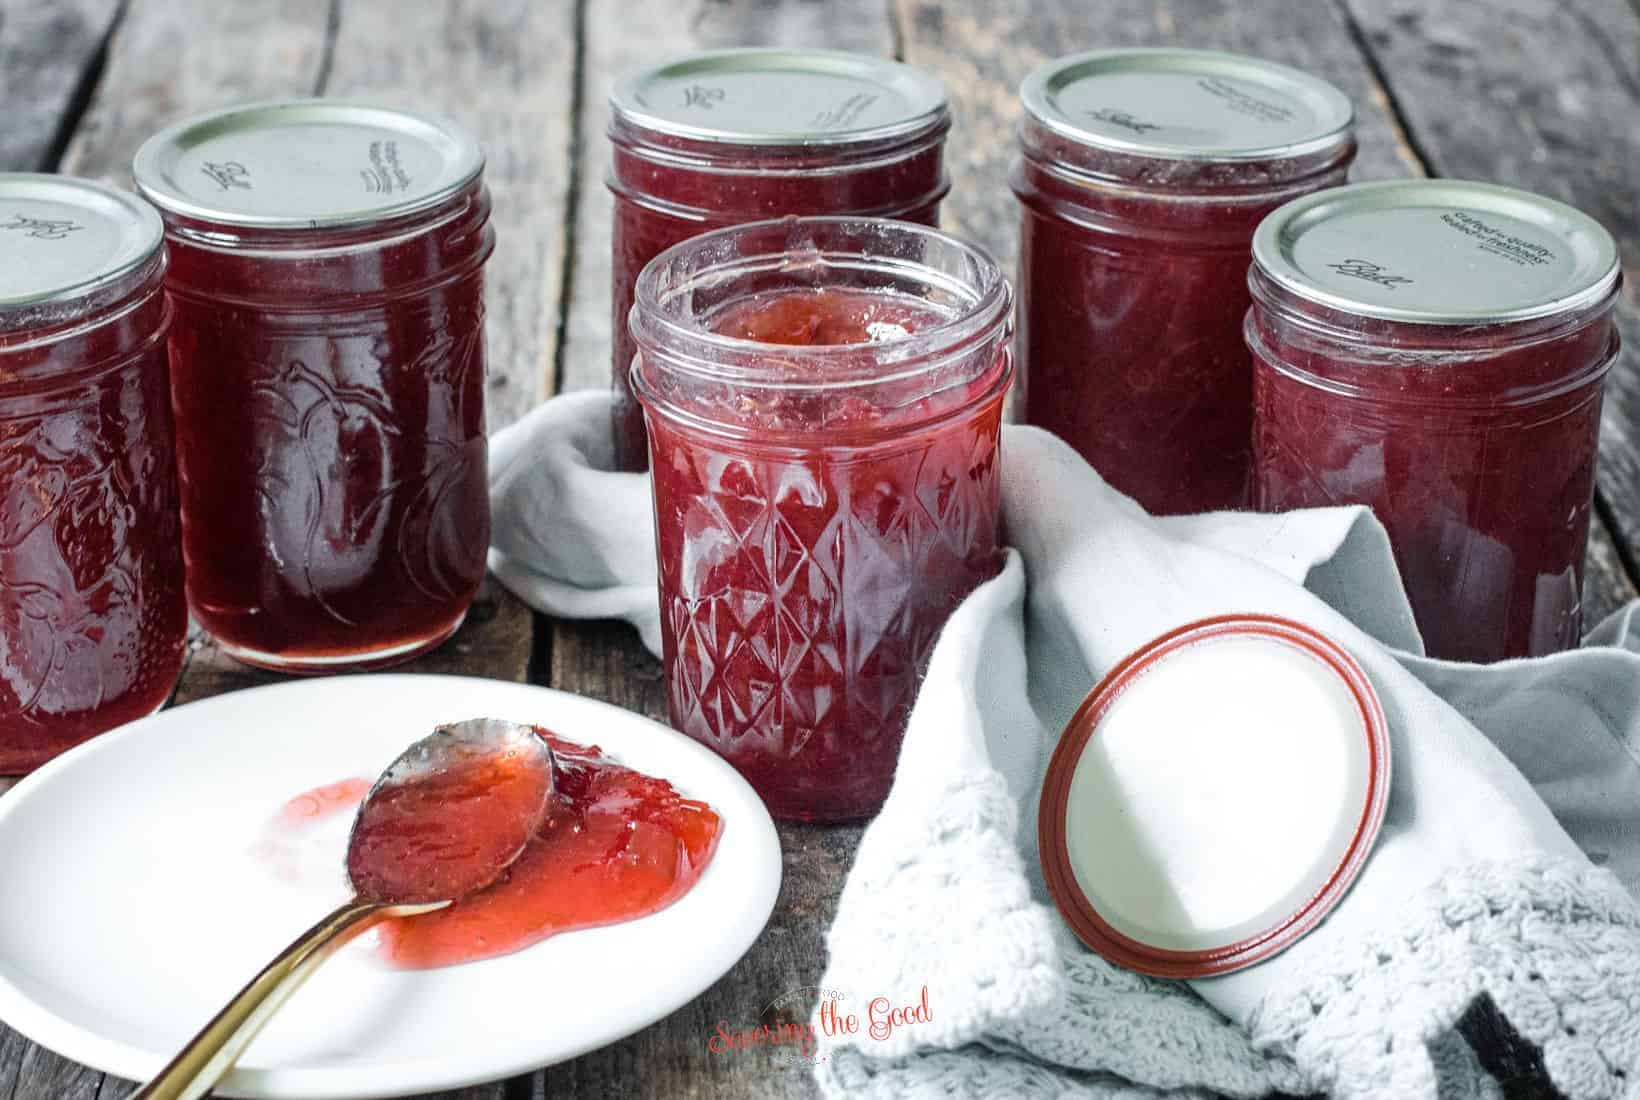 6 jelly jars of Rhubarb Jam, one open with a spoon pooling with jam on a white plate